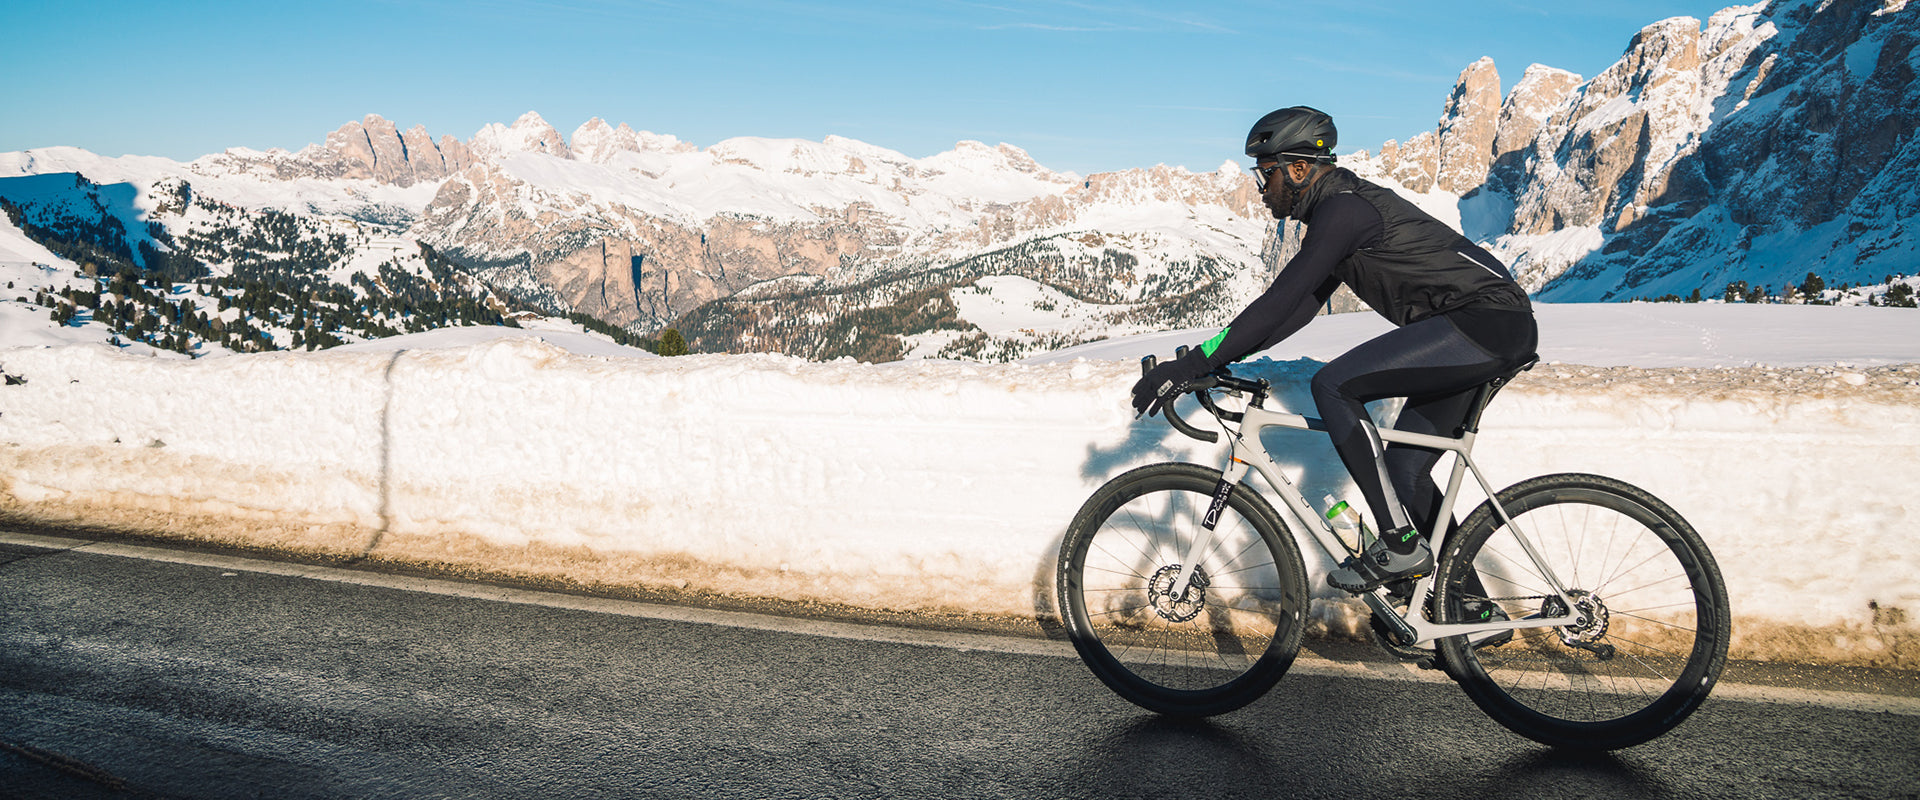 Adventure Winter Cycling Bib Tights in Black for cold weather riding.